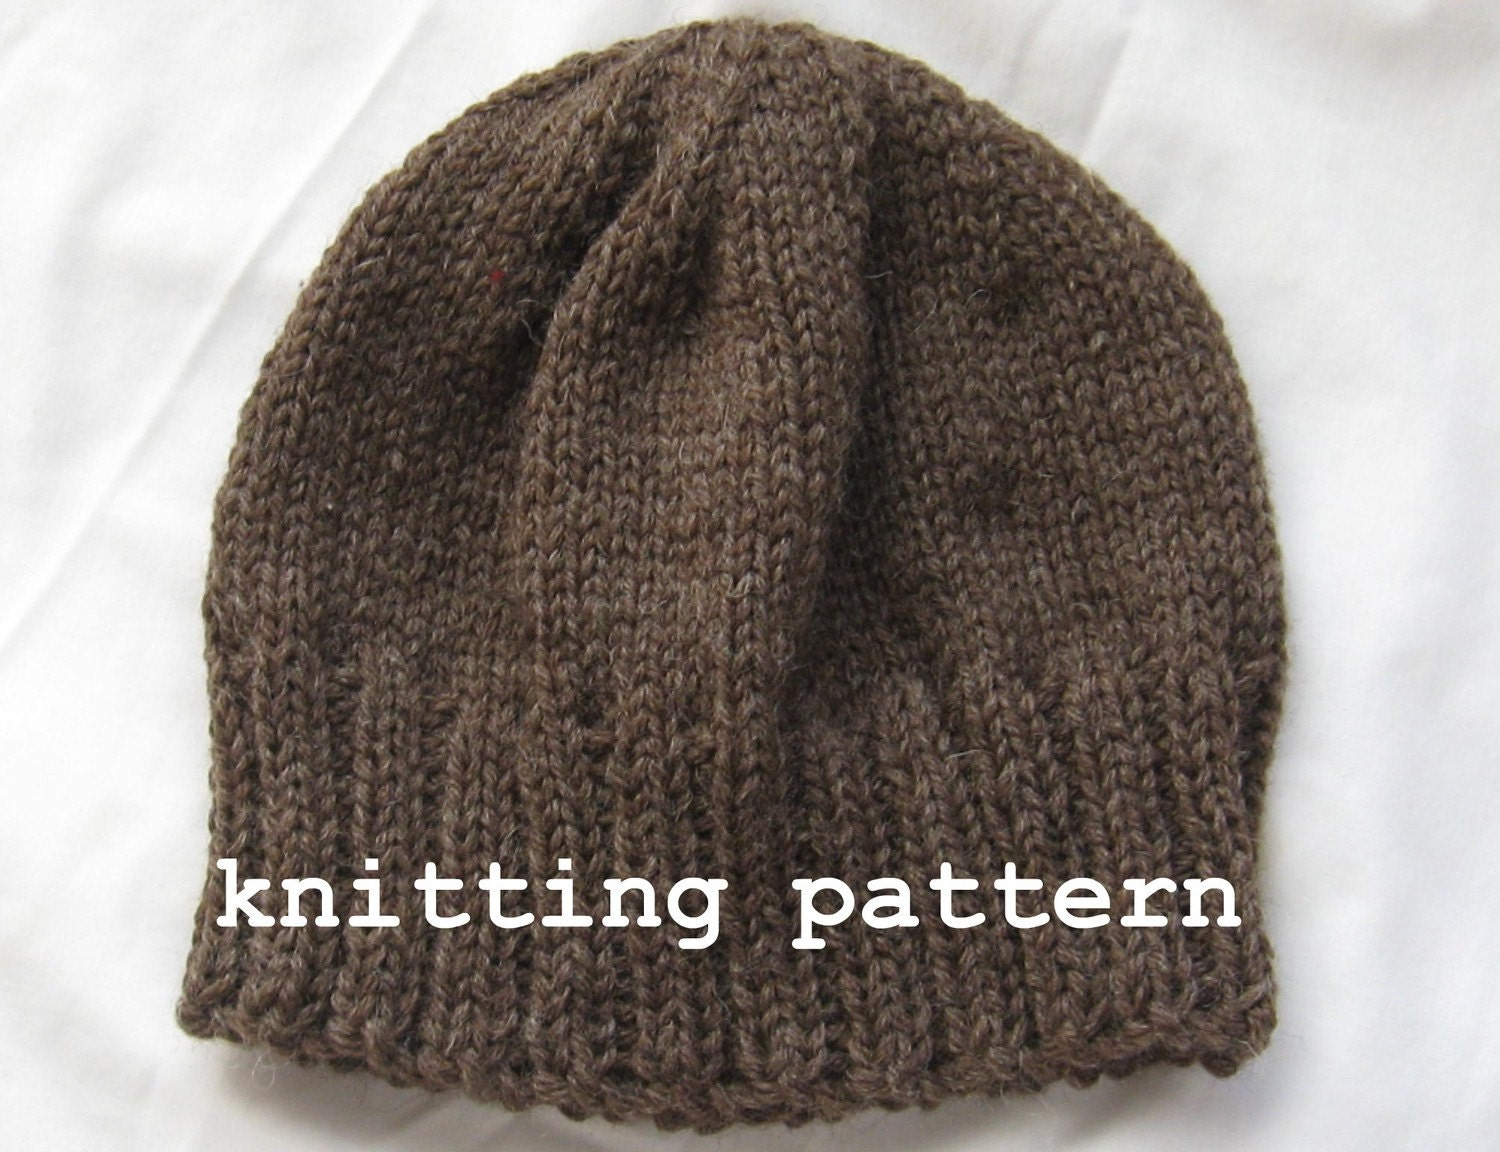 Knitting Beanie Patterns : Knitting pattern pdf men s winter beanie